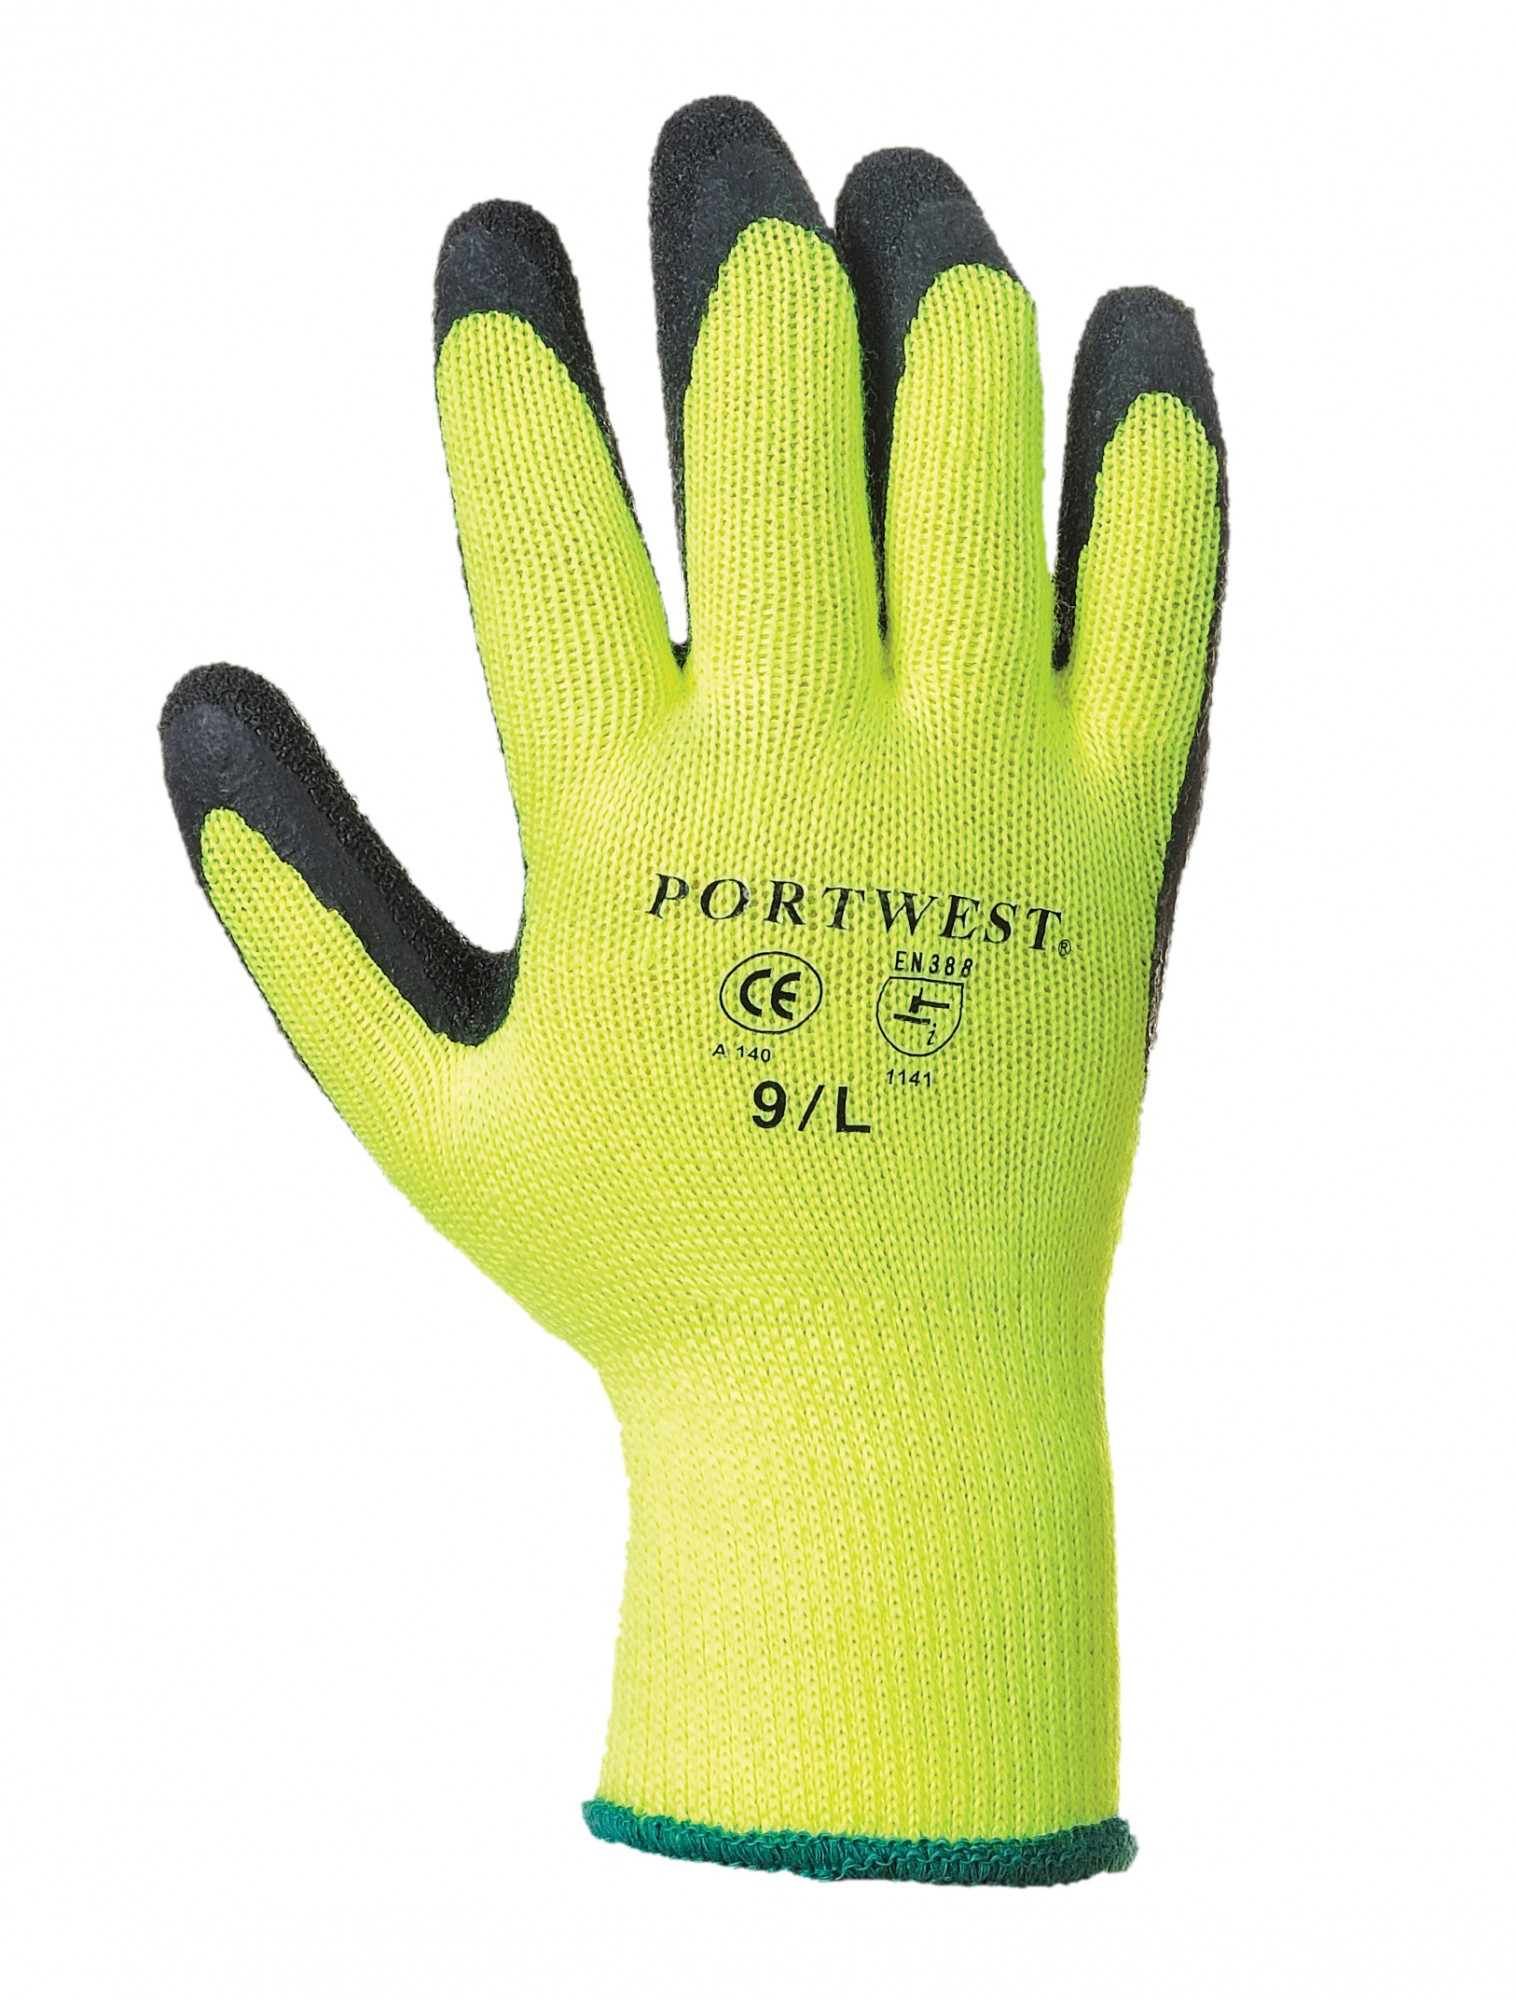 Thermal Grip Work Glove with Premium Quality Grip Portwest